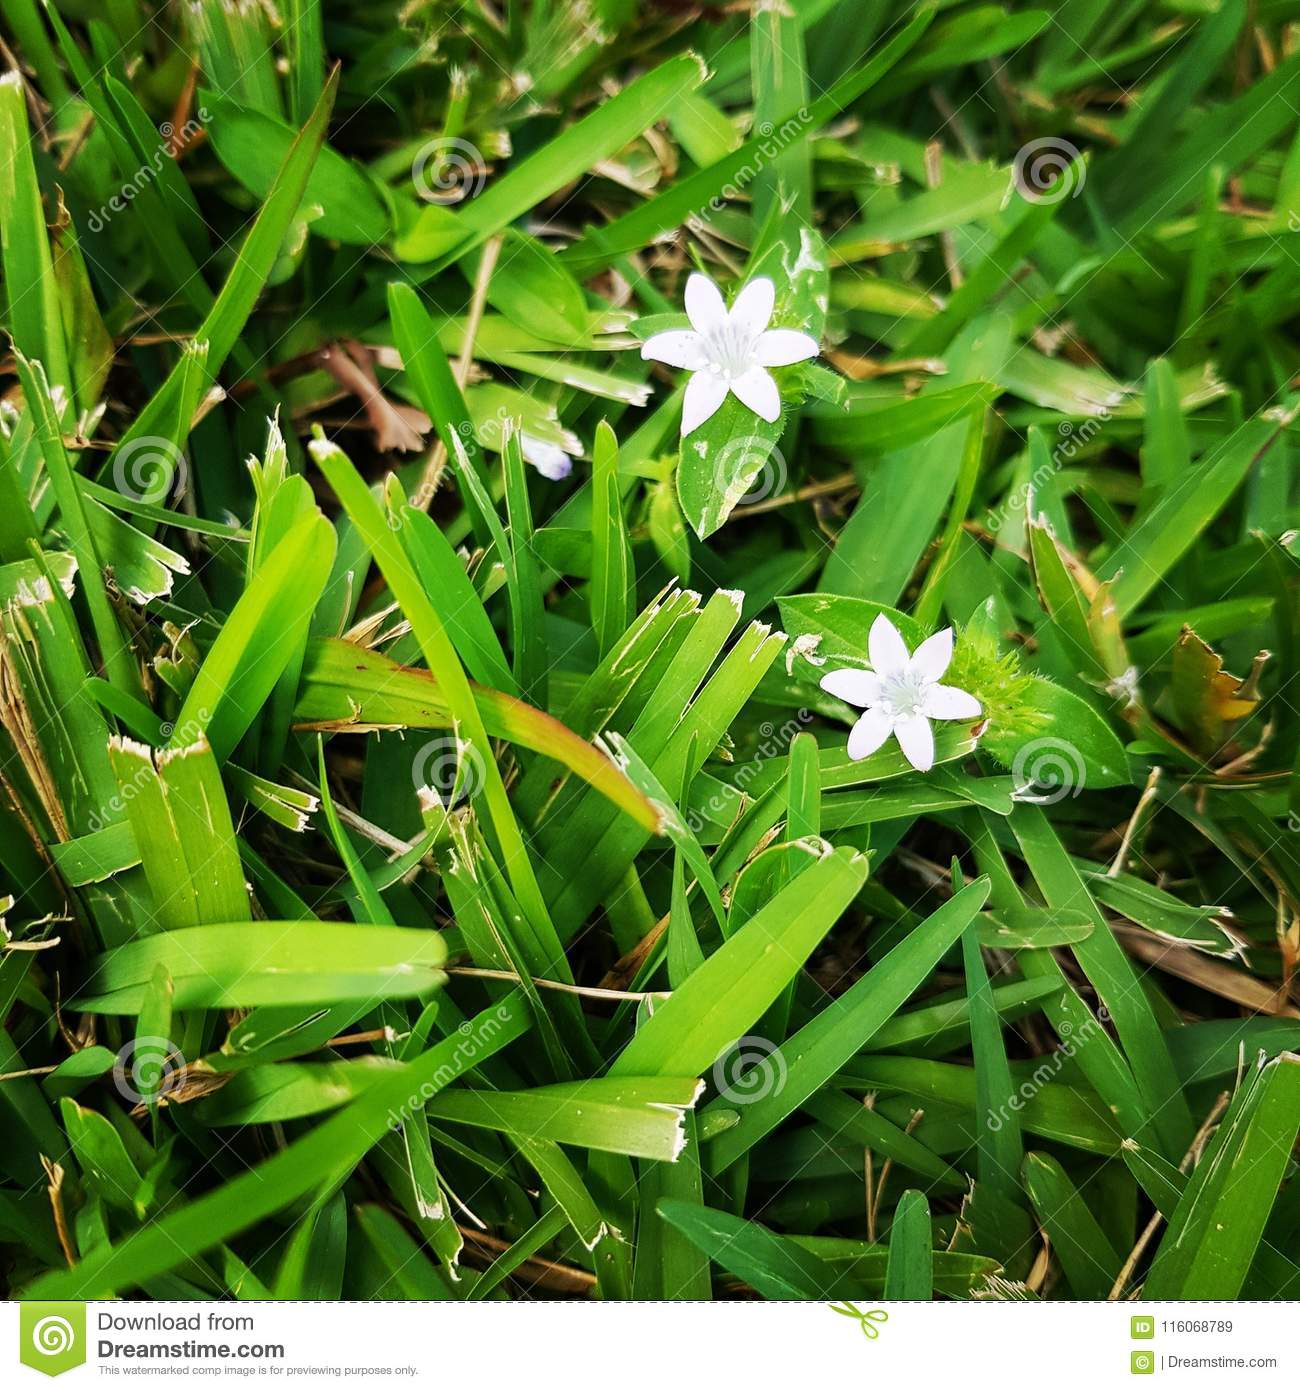 White Flowers In Grass Stock Image Image Of Grass Little 116068789